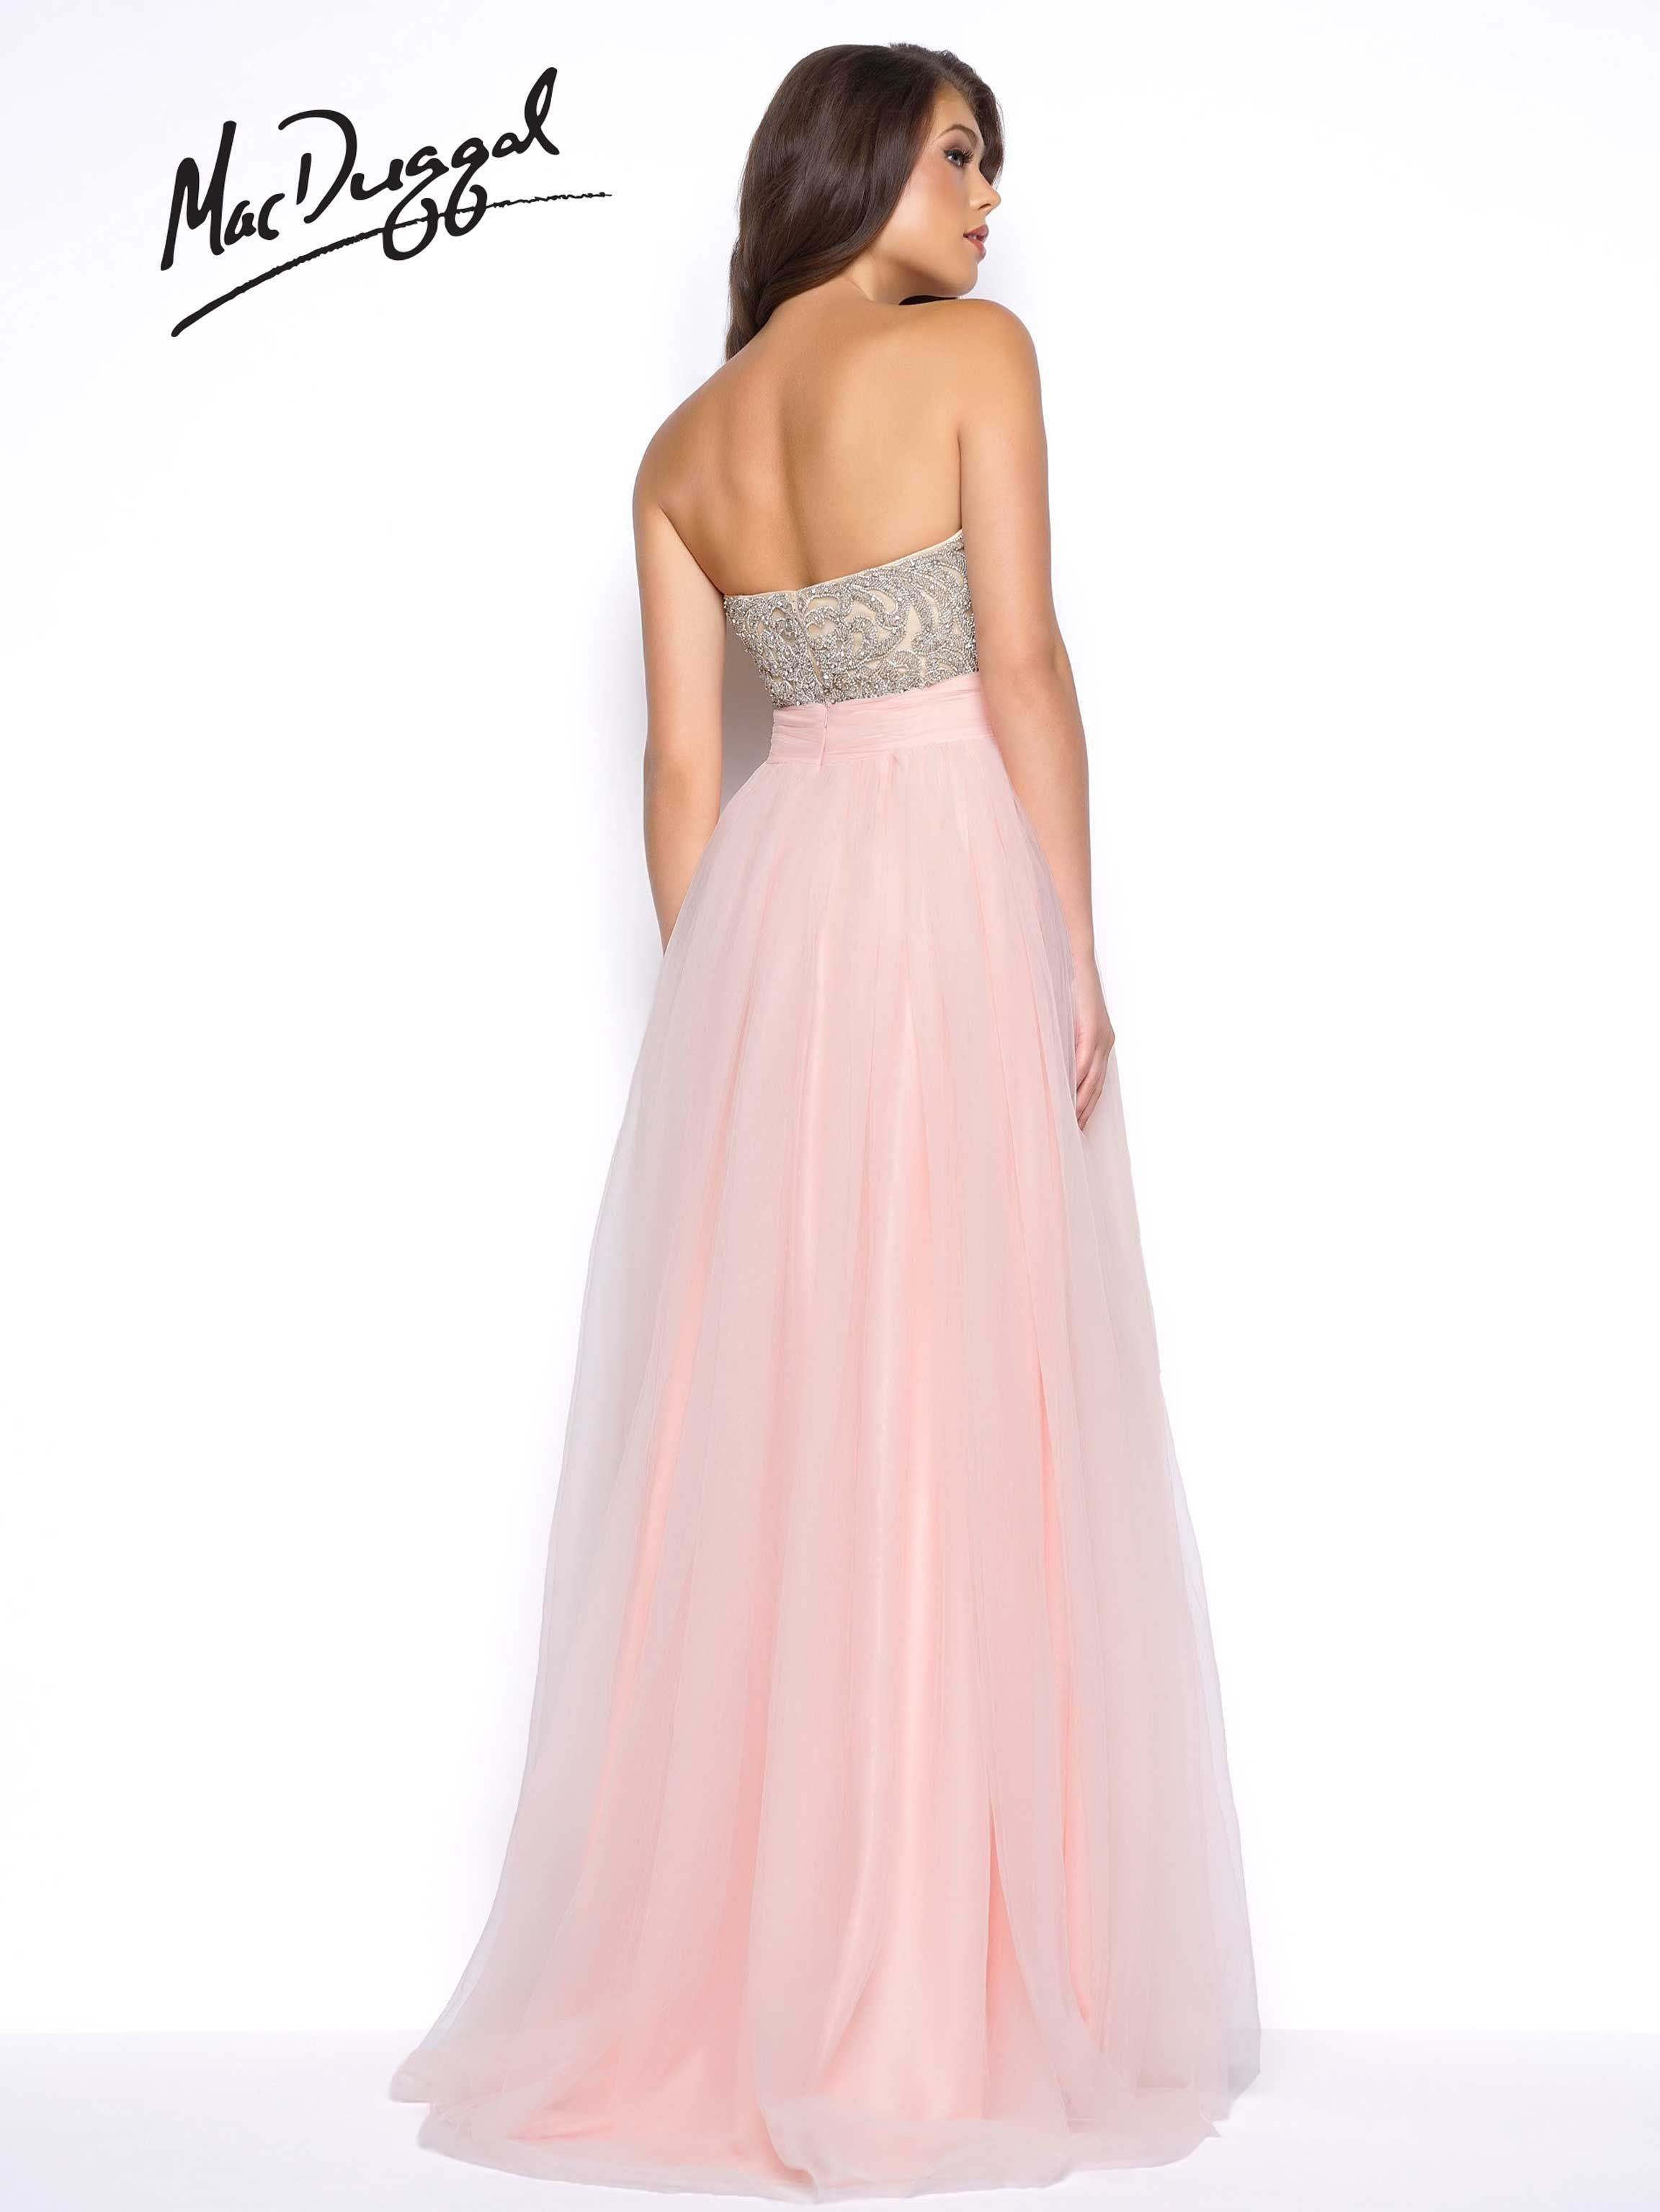 empire waist pink prom dress with embellished top. style 20059m